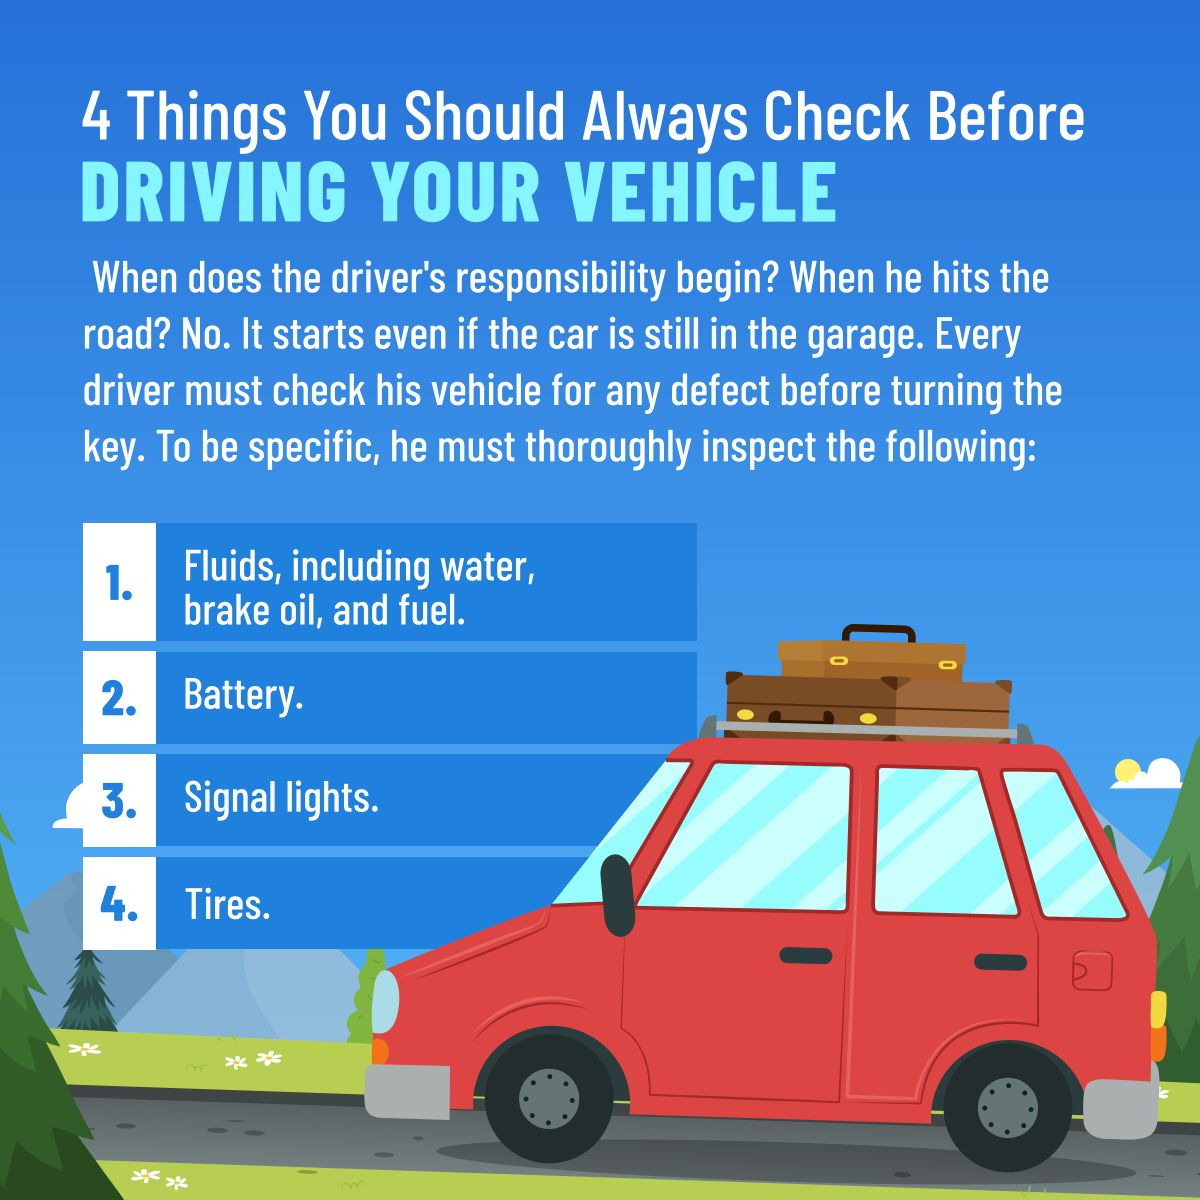 After You Start Your Vehicle, And As You Begin To Drive, Always Check Your